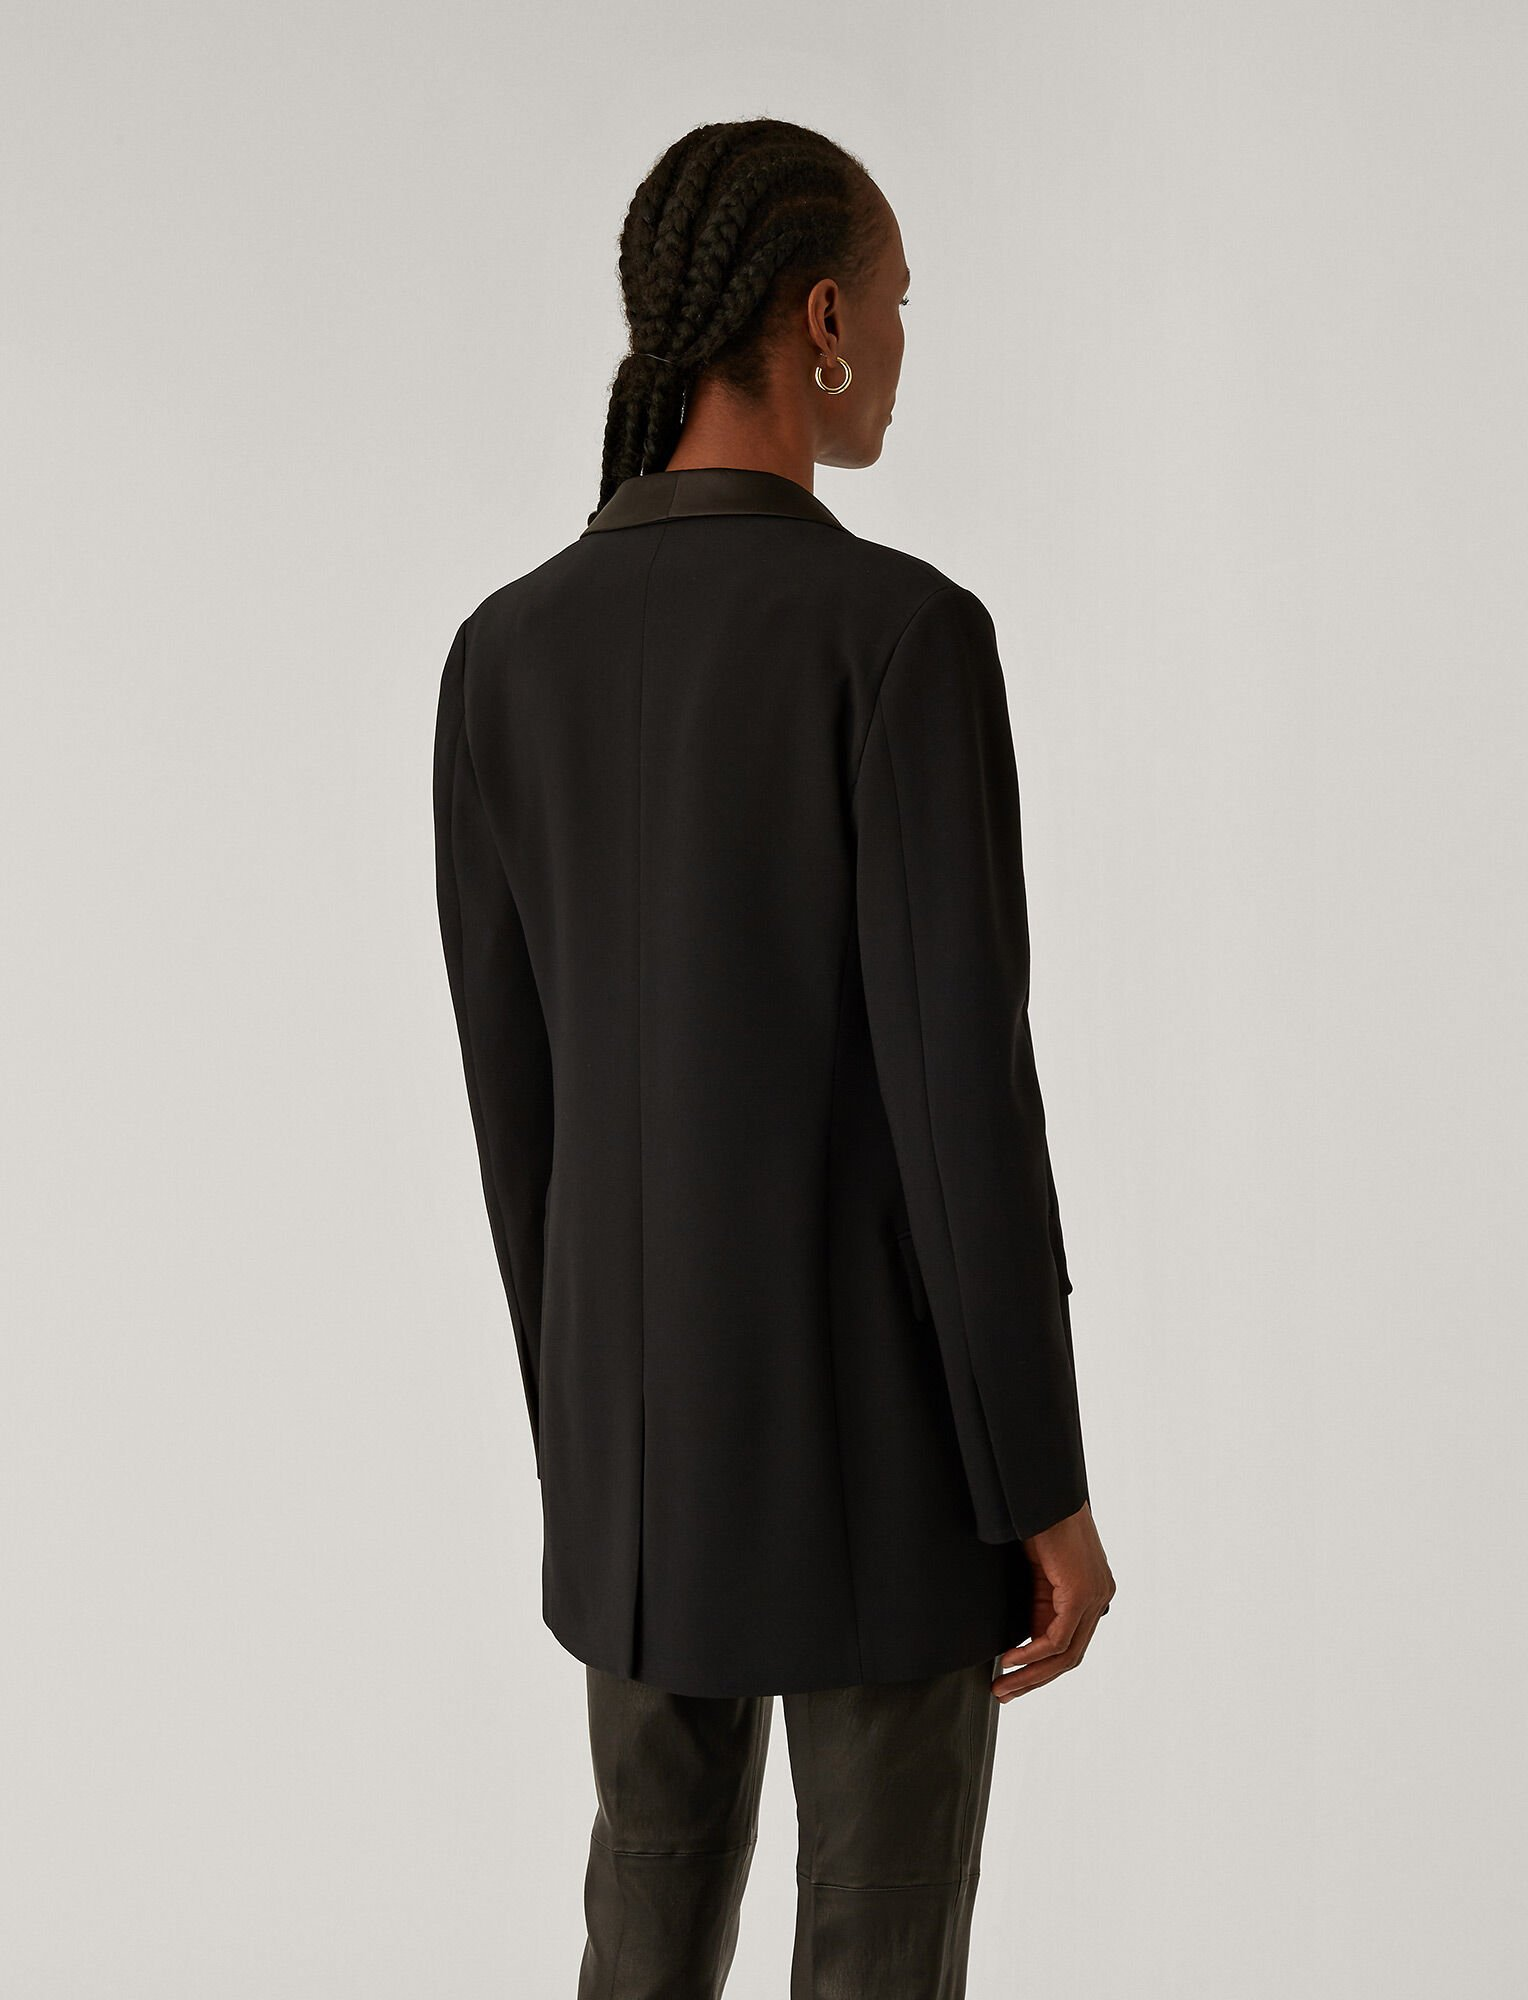 Joseph, Clapton Stretch Cady Jacket, in BLACK